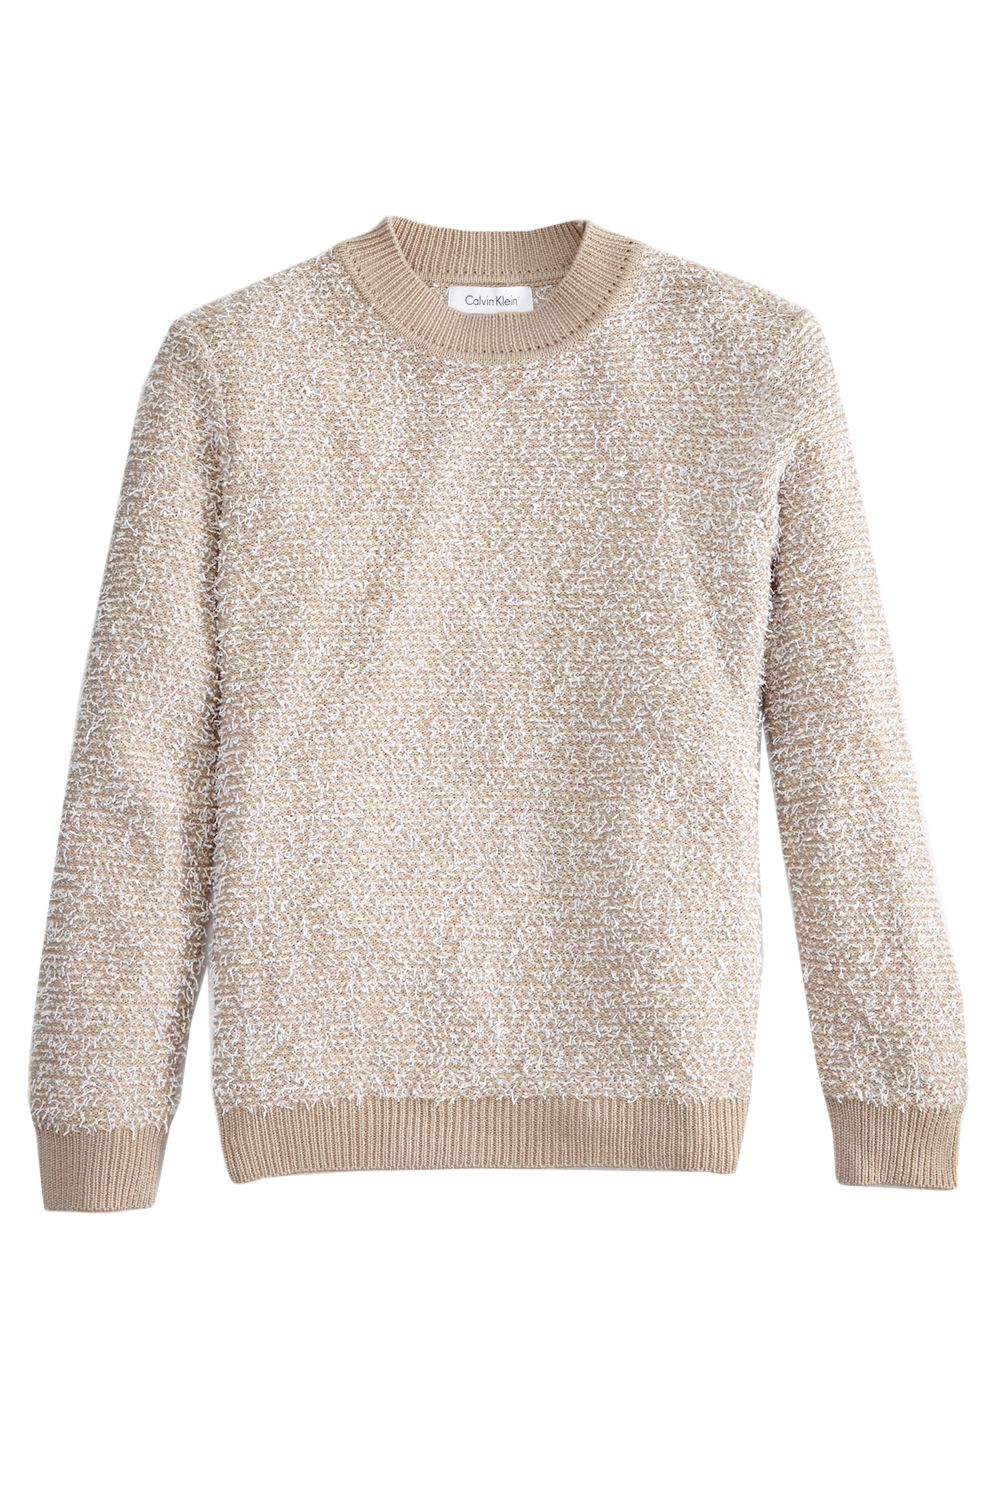 """<p><strong>Anxiety:</strong> Getting cold and itchy and all-around uncomfortable.</p><p><strong>Solution: </strong>Bring a super cozy sweater that doubles as a comfort object (you know, like a teddy bear), but doesn't compromise your style.</p><p><em>Calvin Klein Sweater&#x3B; $TK, <a href=""""http://www.calvinklein.com/shop/en/ck/search/womens-sweaters"""" target=""""_blank"""">calvinklein.com</a> NEED TO ADD PRICE</em></p>"""